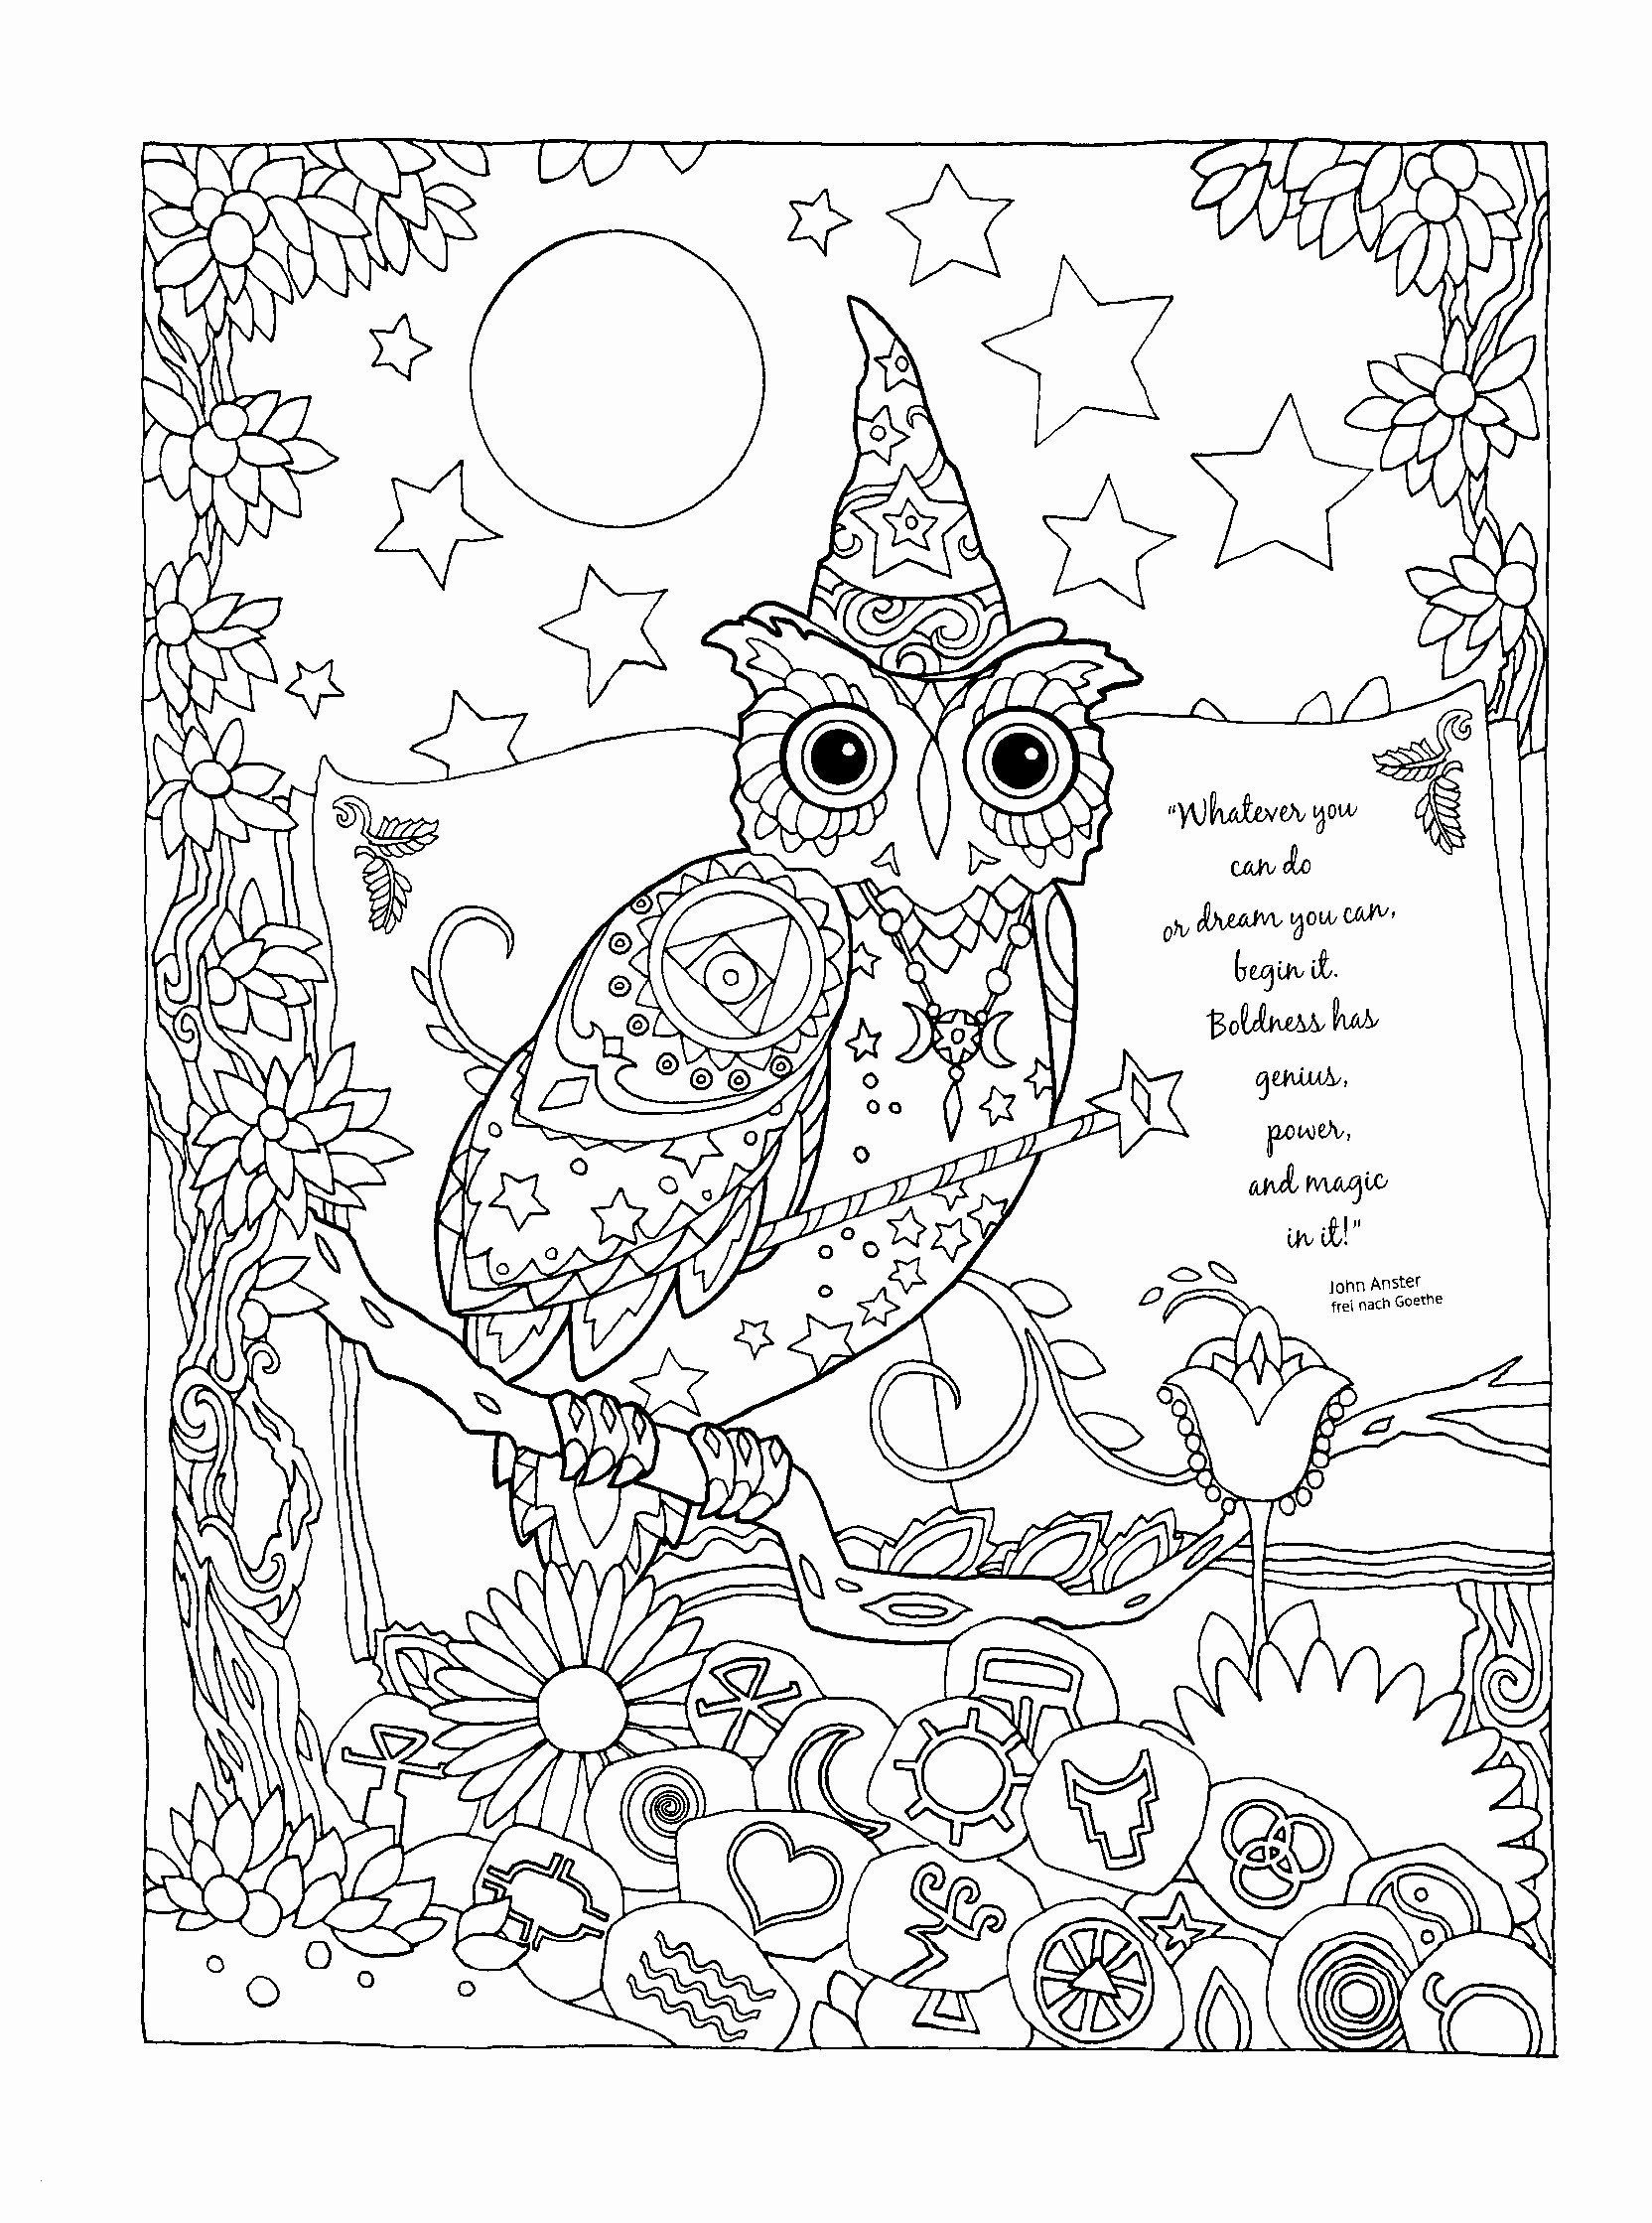 coloring pages for restaurants Download-Restaurant Coloring Pages Ram Coloring Page Wonderful 45 Fresh Restaurant Coloring Pages 14-h